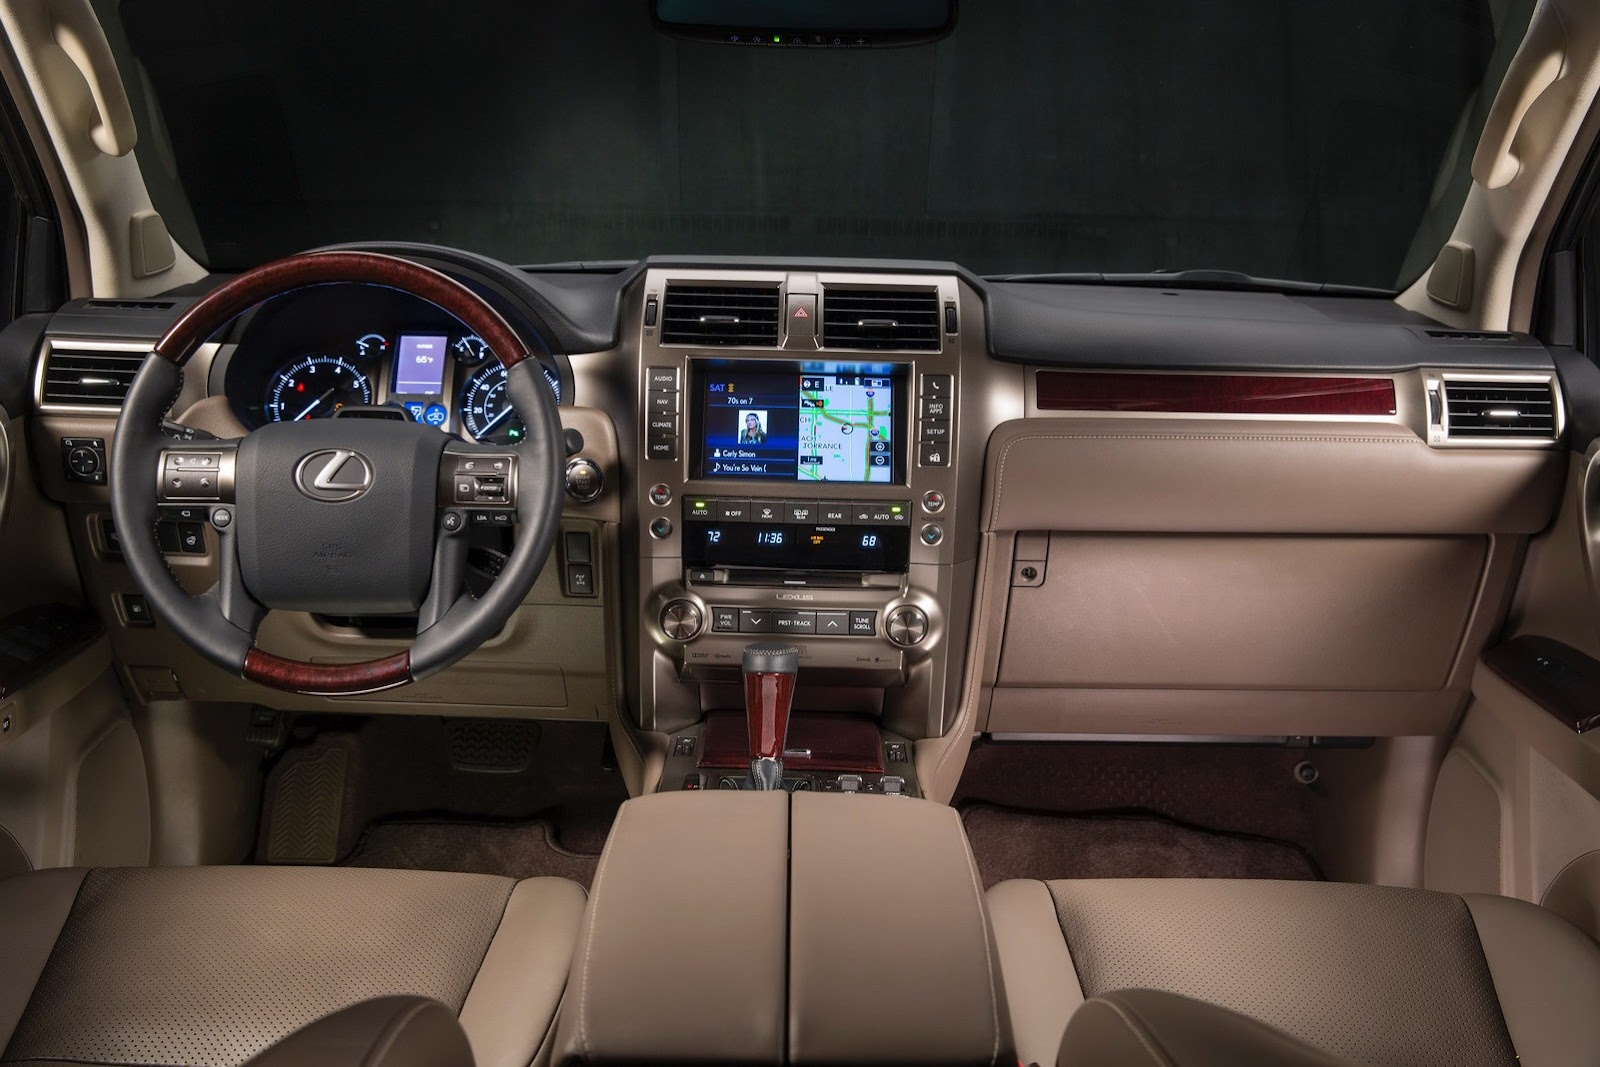 However the better equipped luxury model which includes navigation blind spot monitor with rear cross traffic alert and an adaptable air suspension